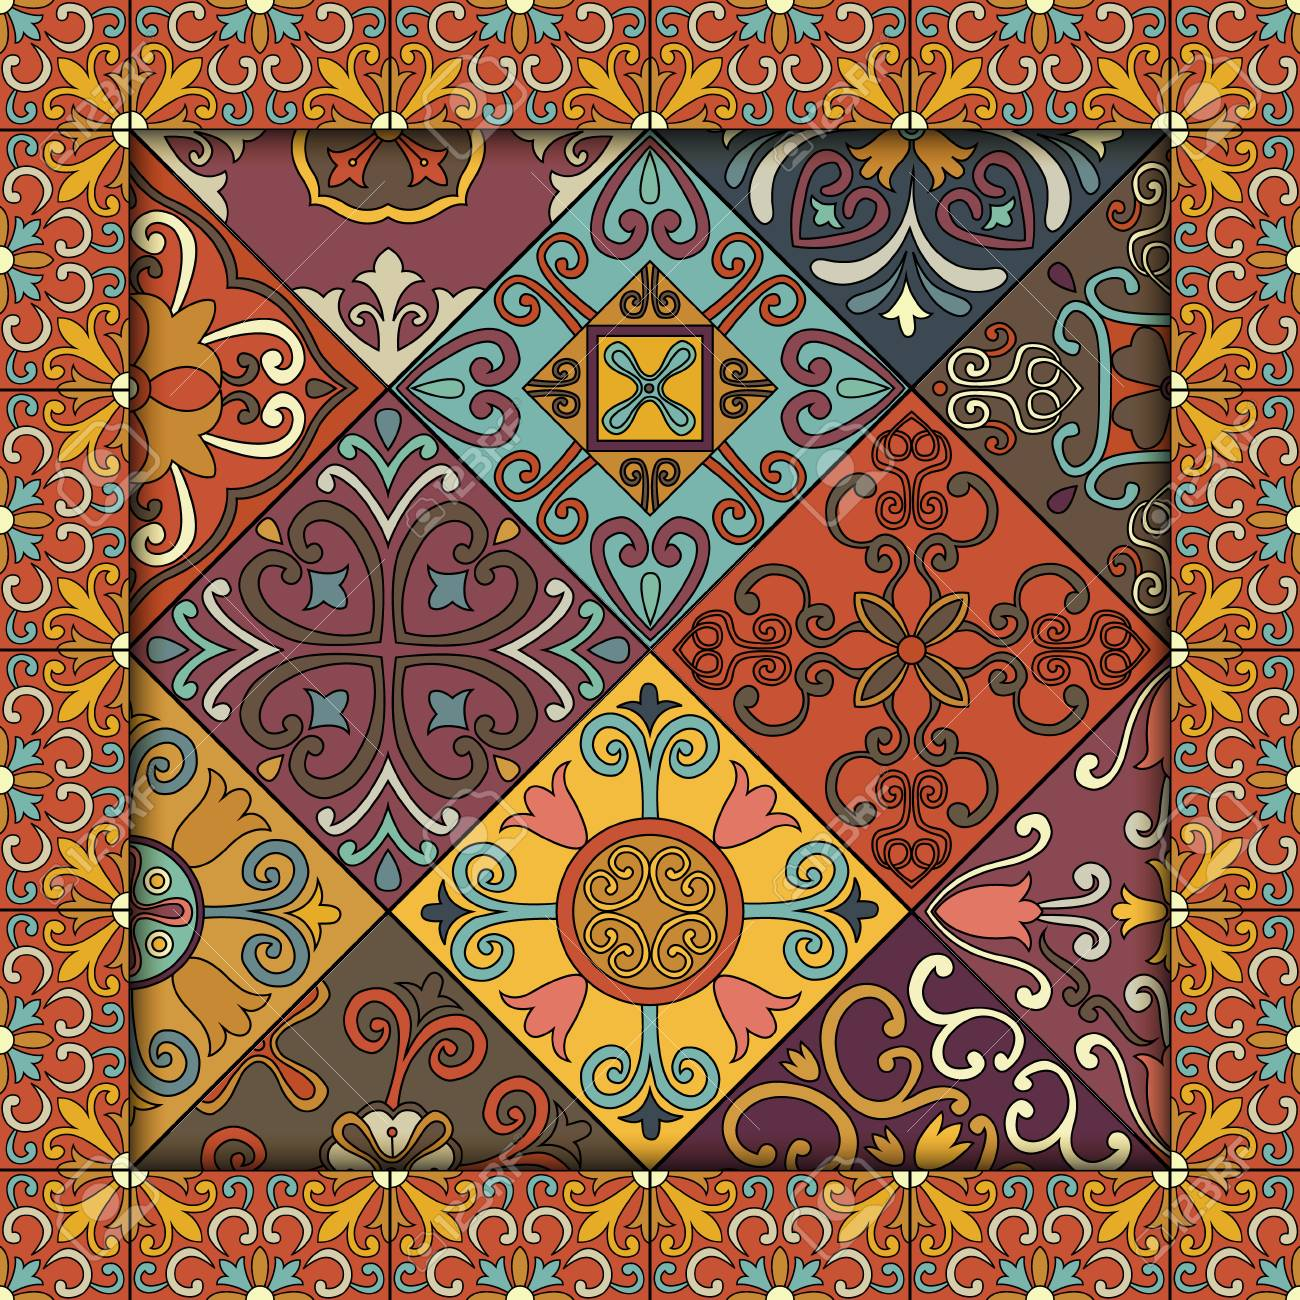 Seamless pattern with portuguese tiles in talavera style. Azulejo, moroccan, mexican ornaments - 83462690